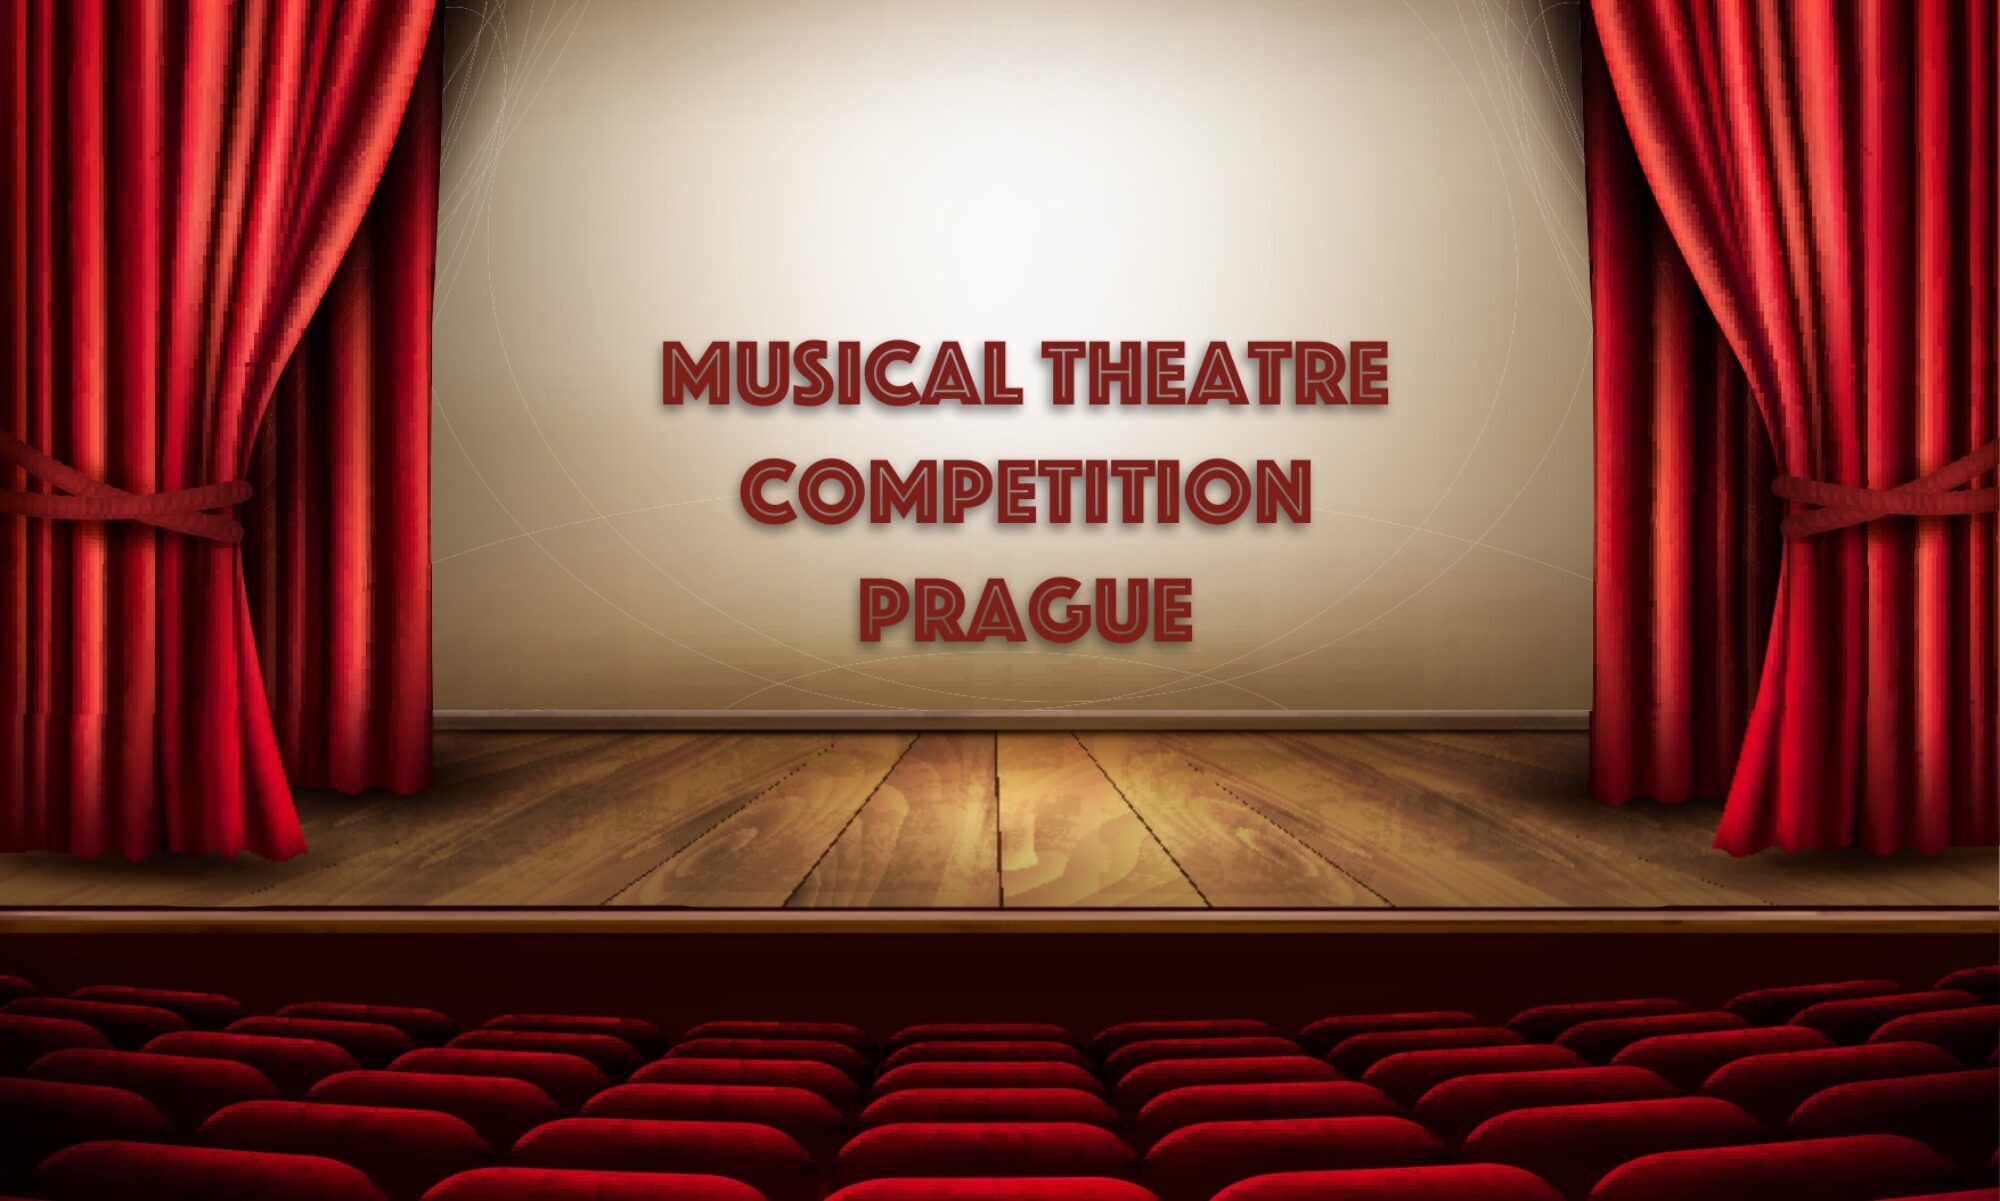 musicaltheatre-competitionprague.com